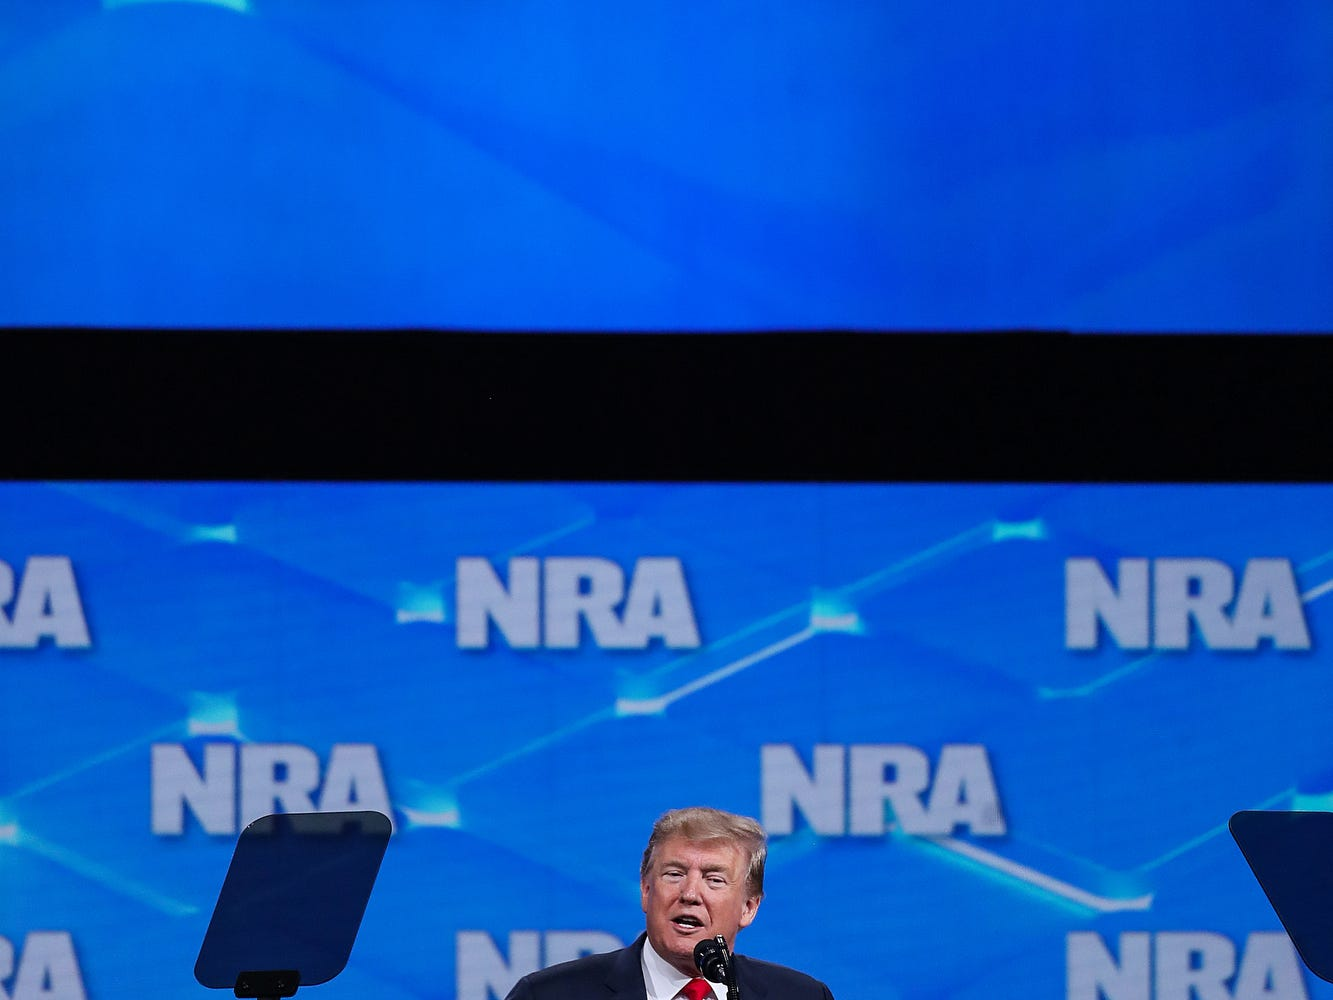 United States President Donald Trump speaks at the National Rifle Association Institute for Legislative Action Leadership Forum, Friday, April 26, 2019, at Lucas Oil Stadium in Indianapolis.